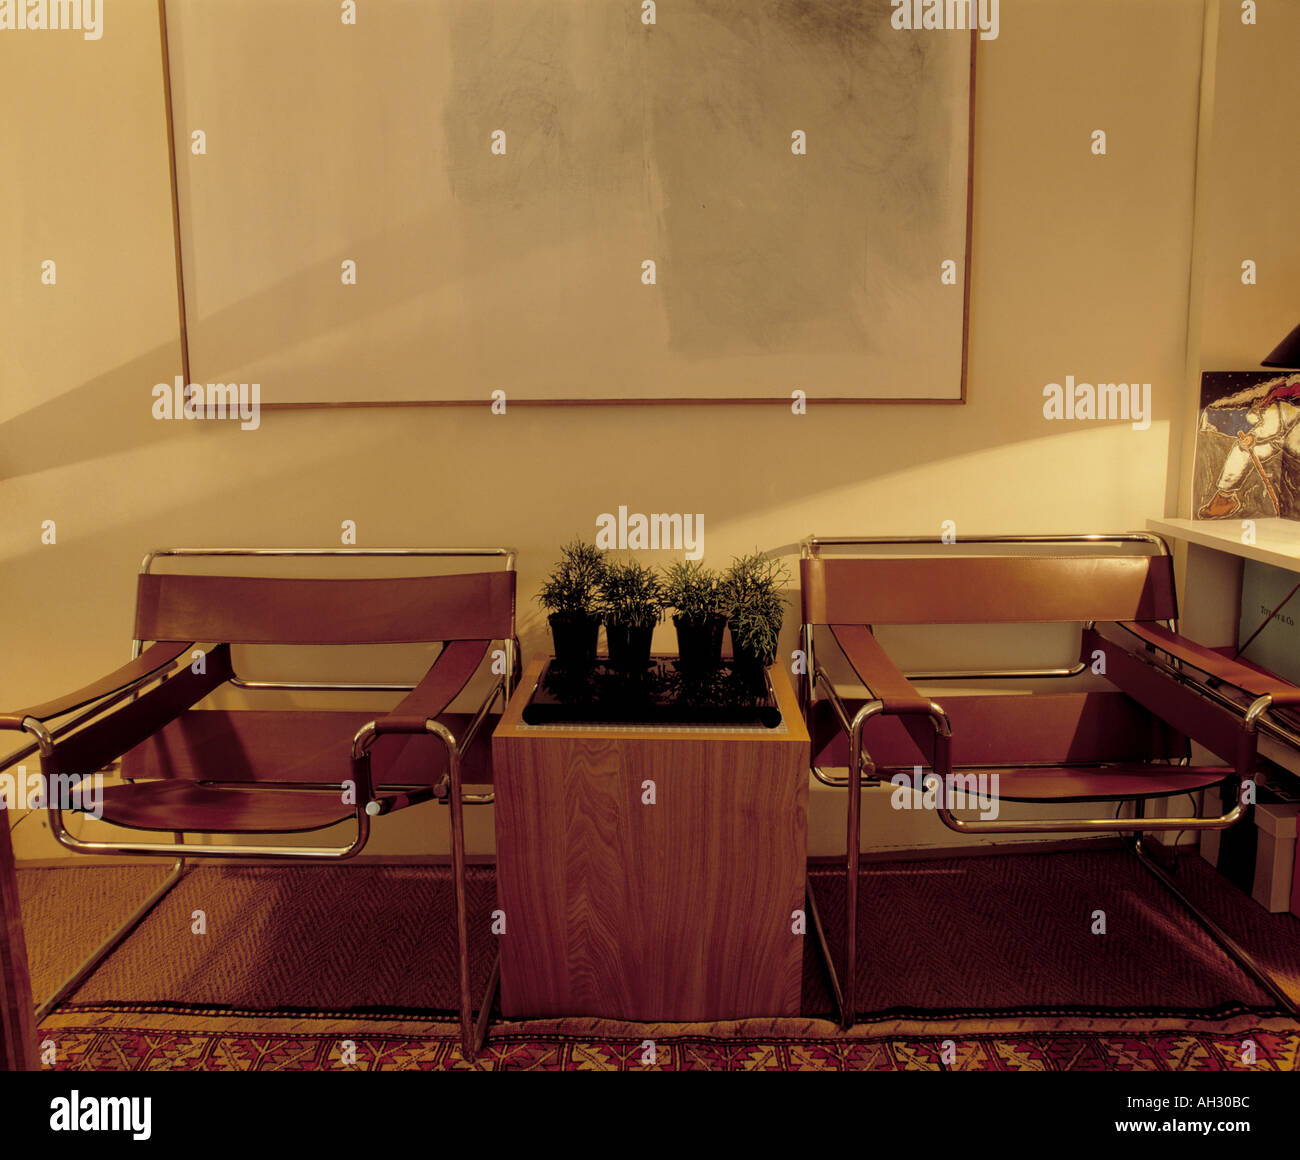 Wassily Chair Stockfotos & Wassily Chair Bilder - Alamy